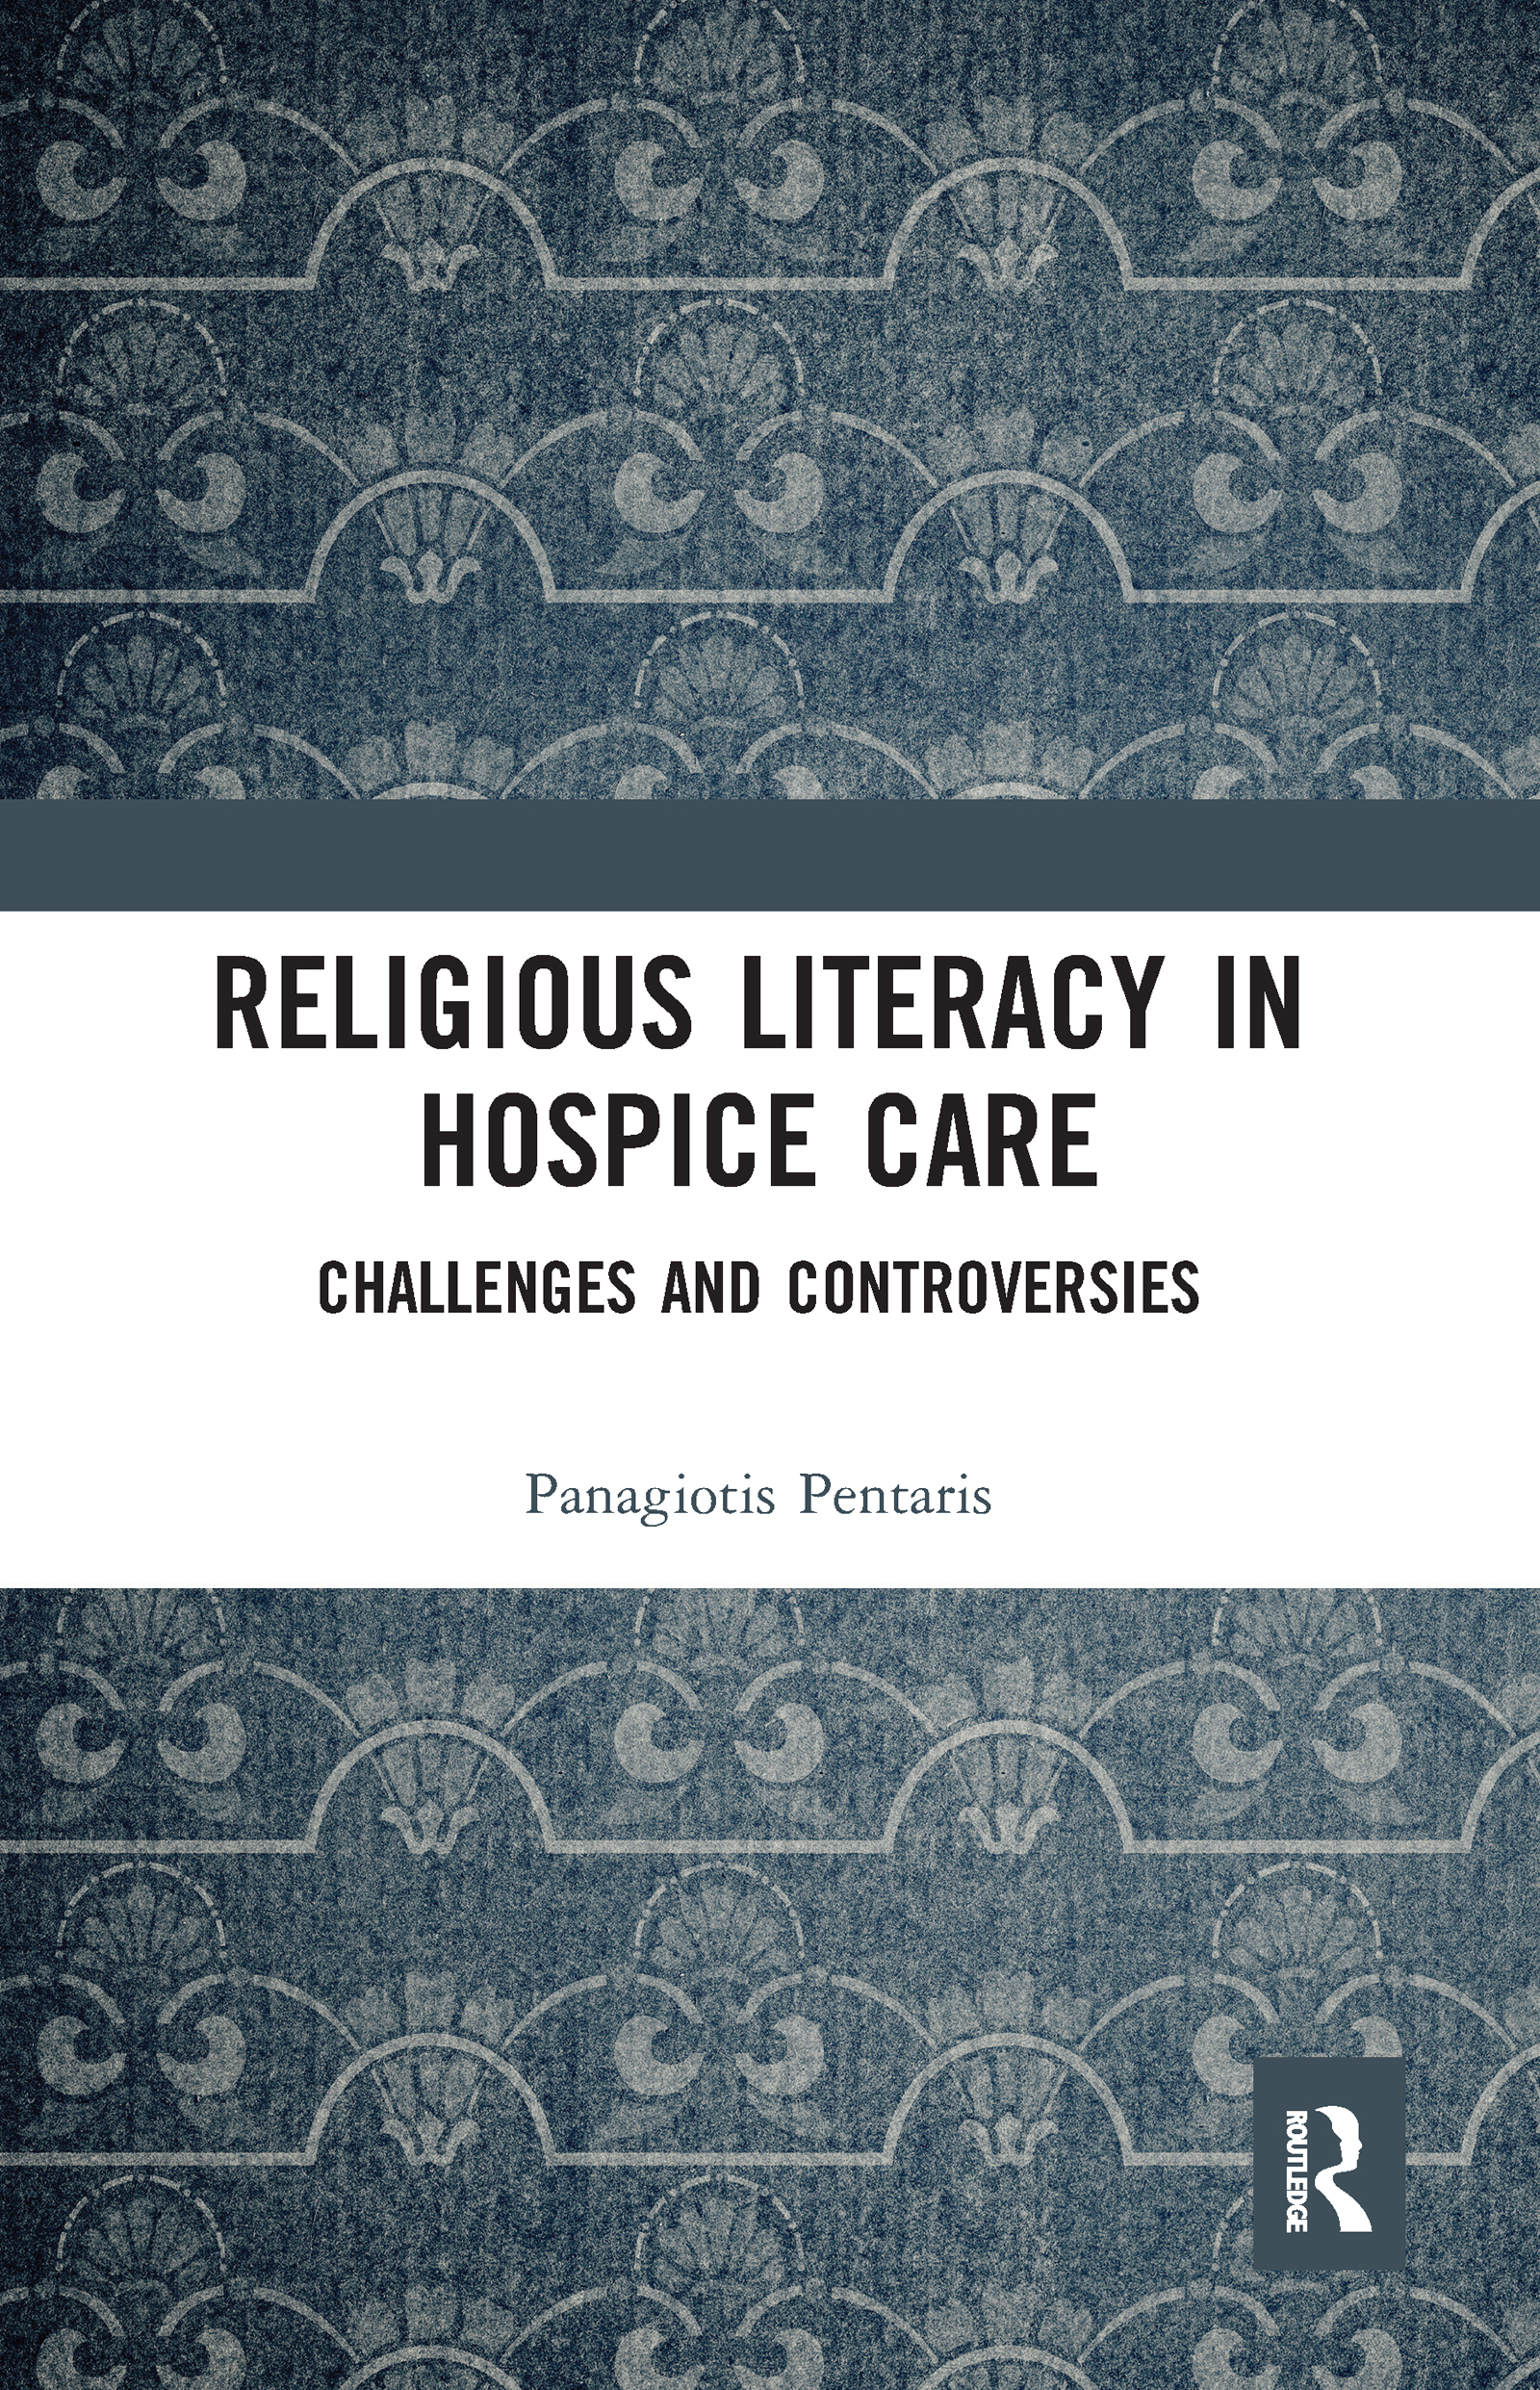 Religious Literacy in Hospice Care